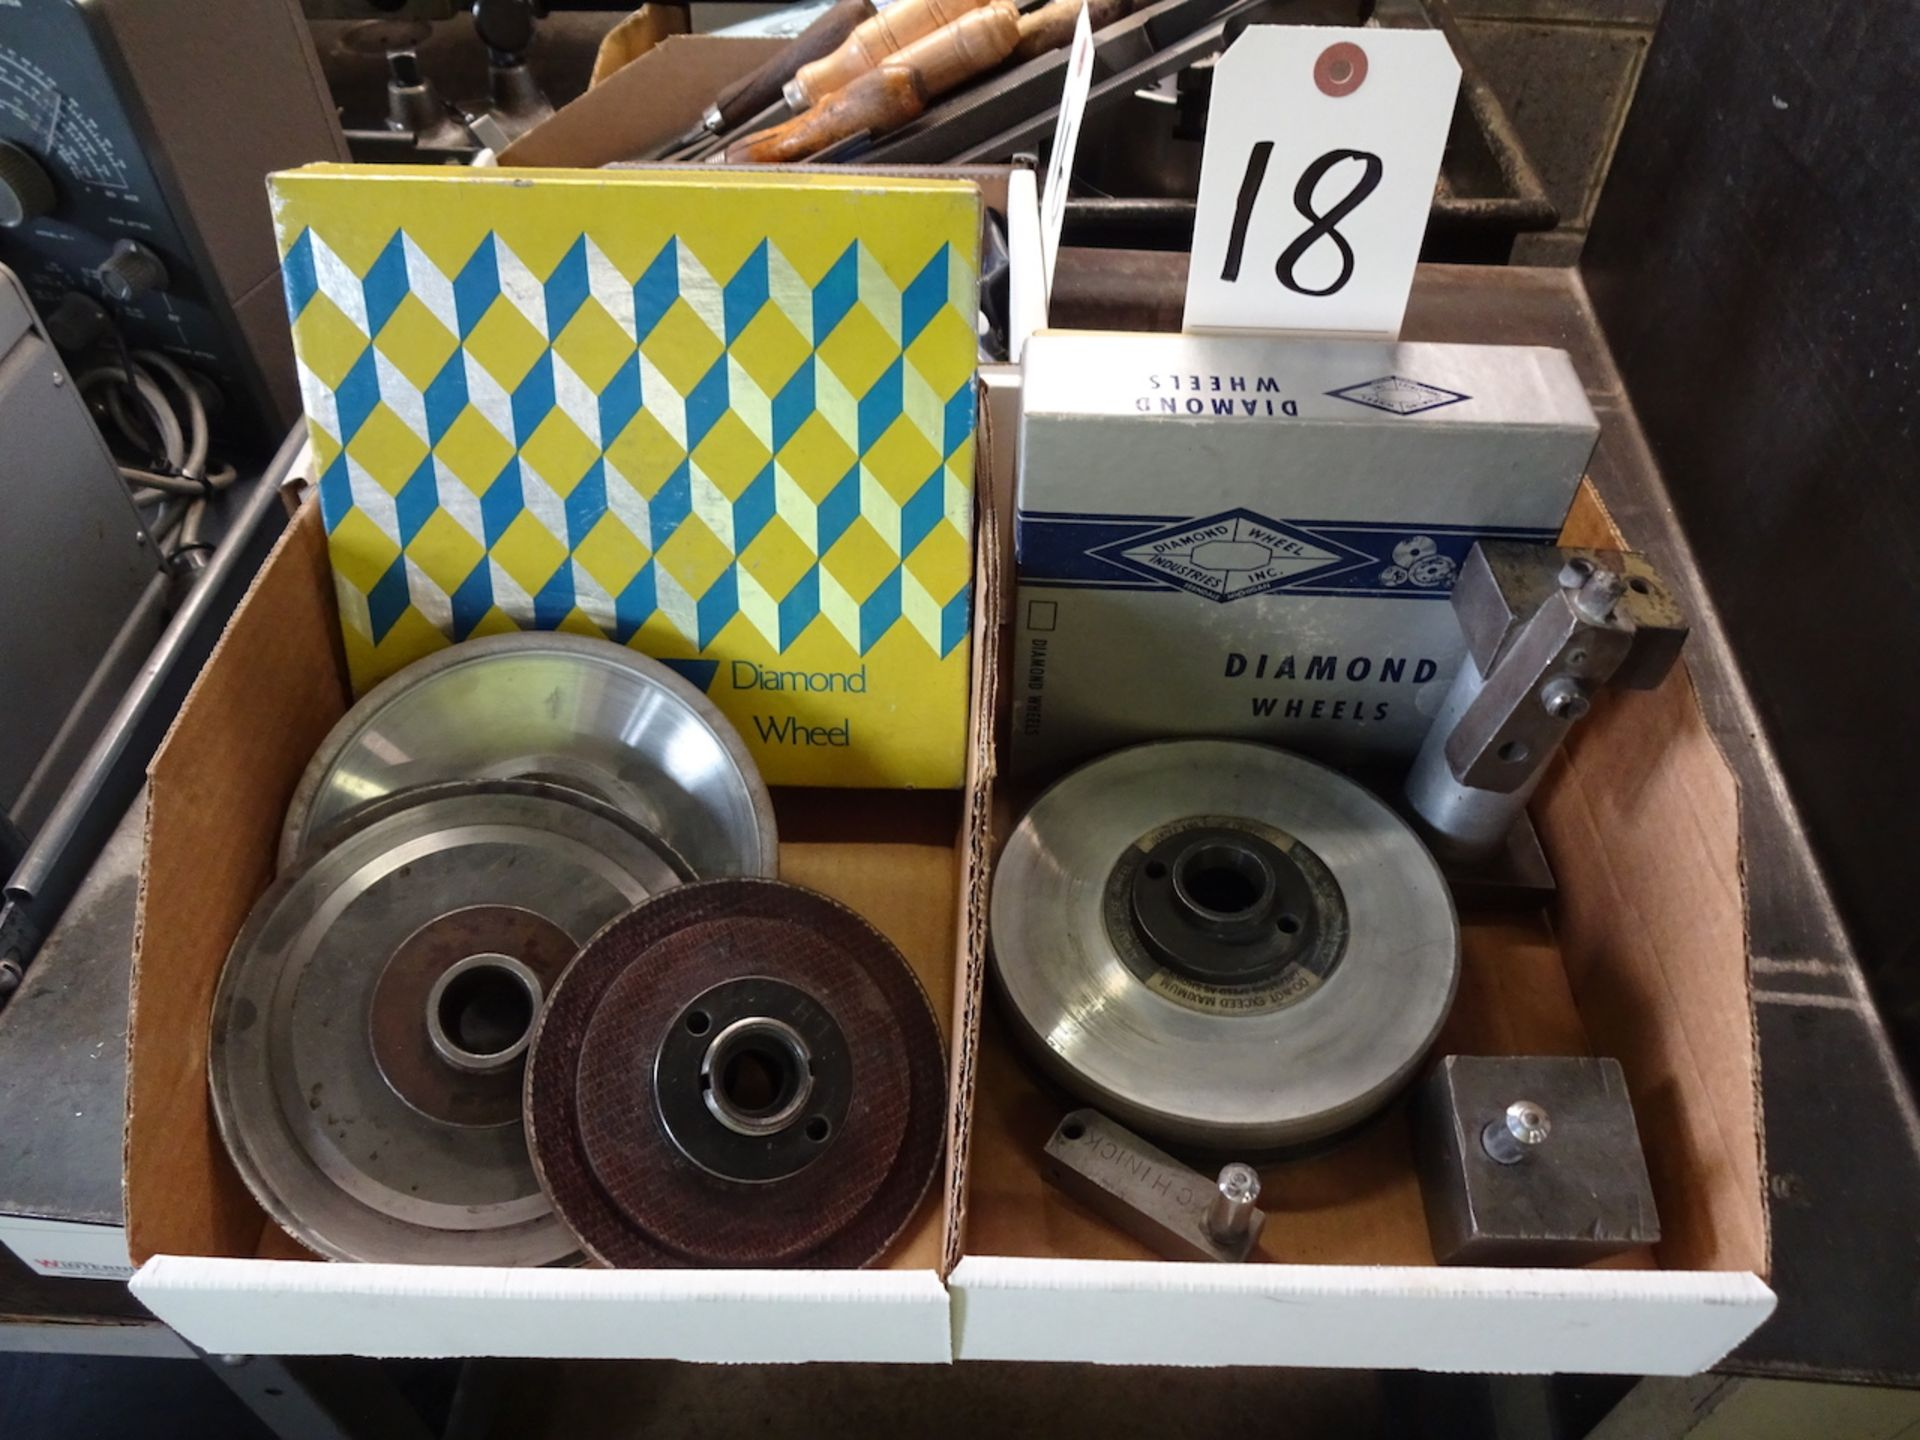 Lot 18 - LOT: ASSORTED DIAMOND WHEEL DRESSERS & DIAMOND WHEELS (IN 2 BOXES)